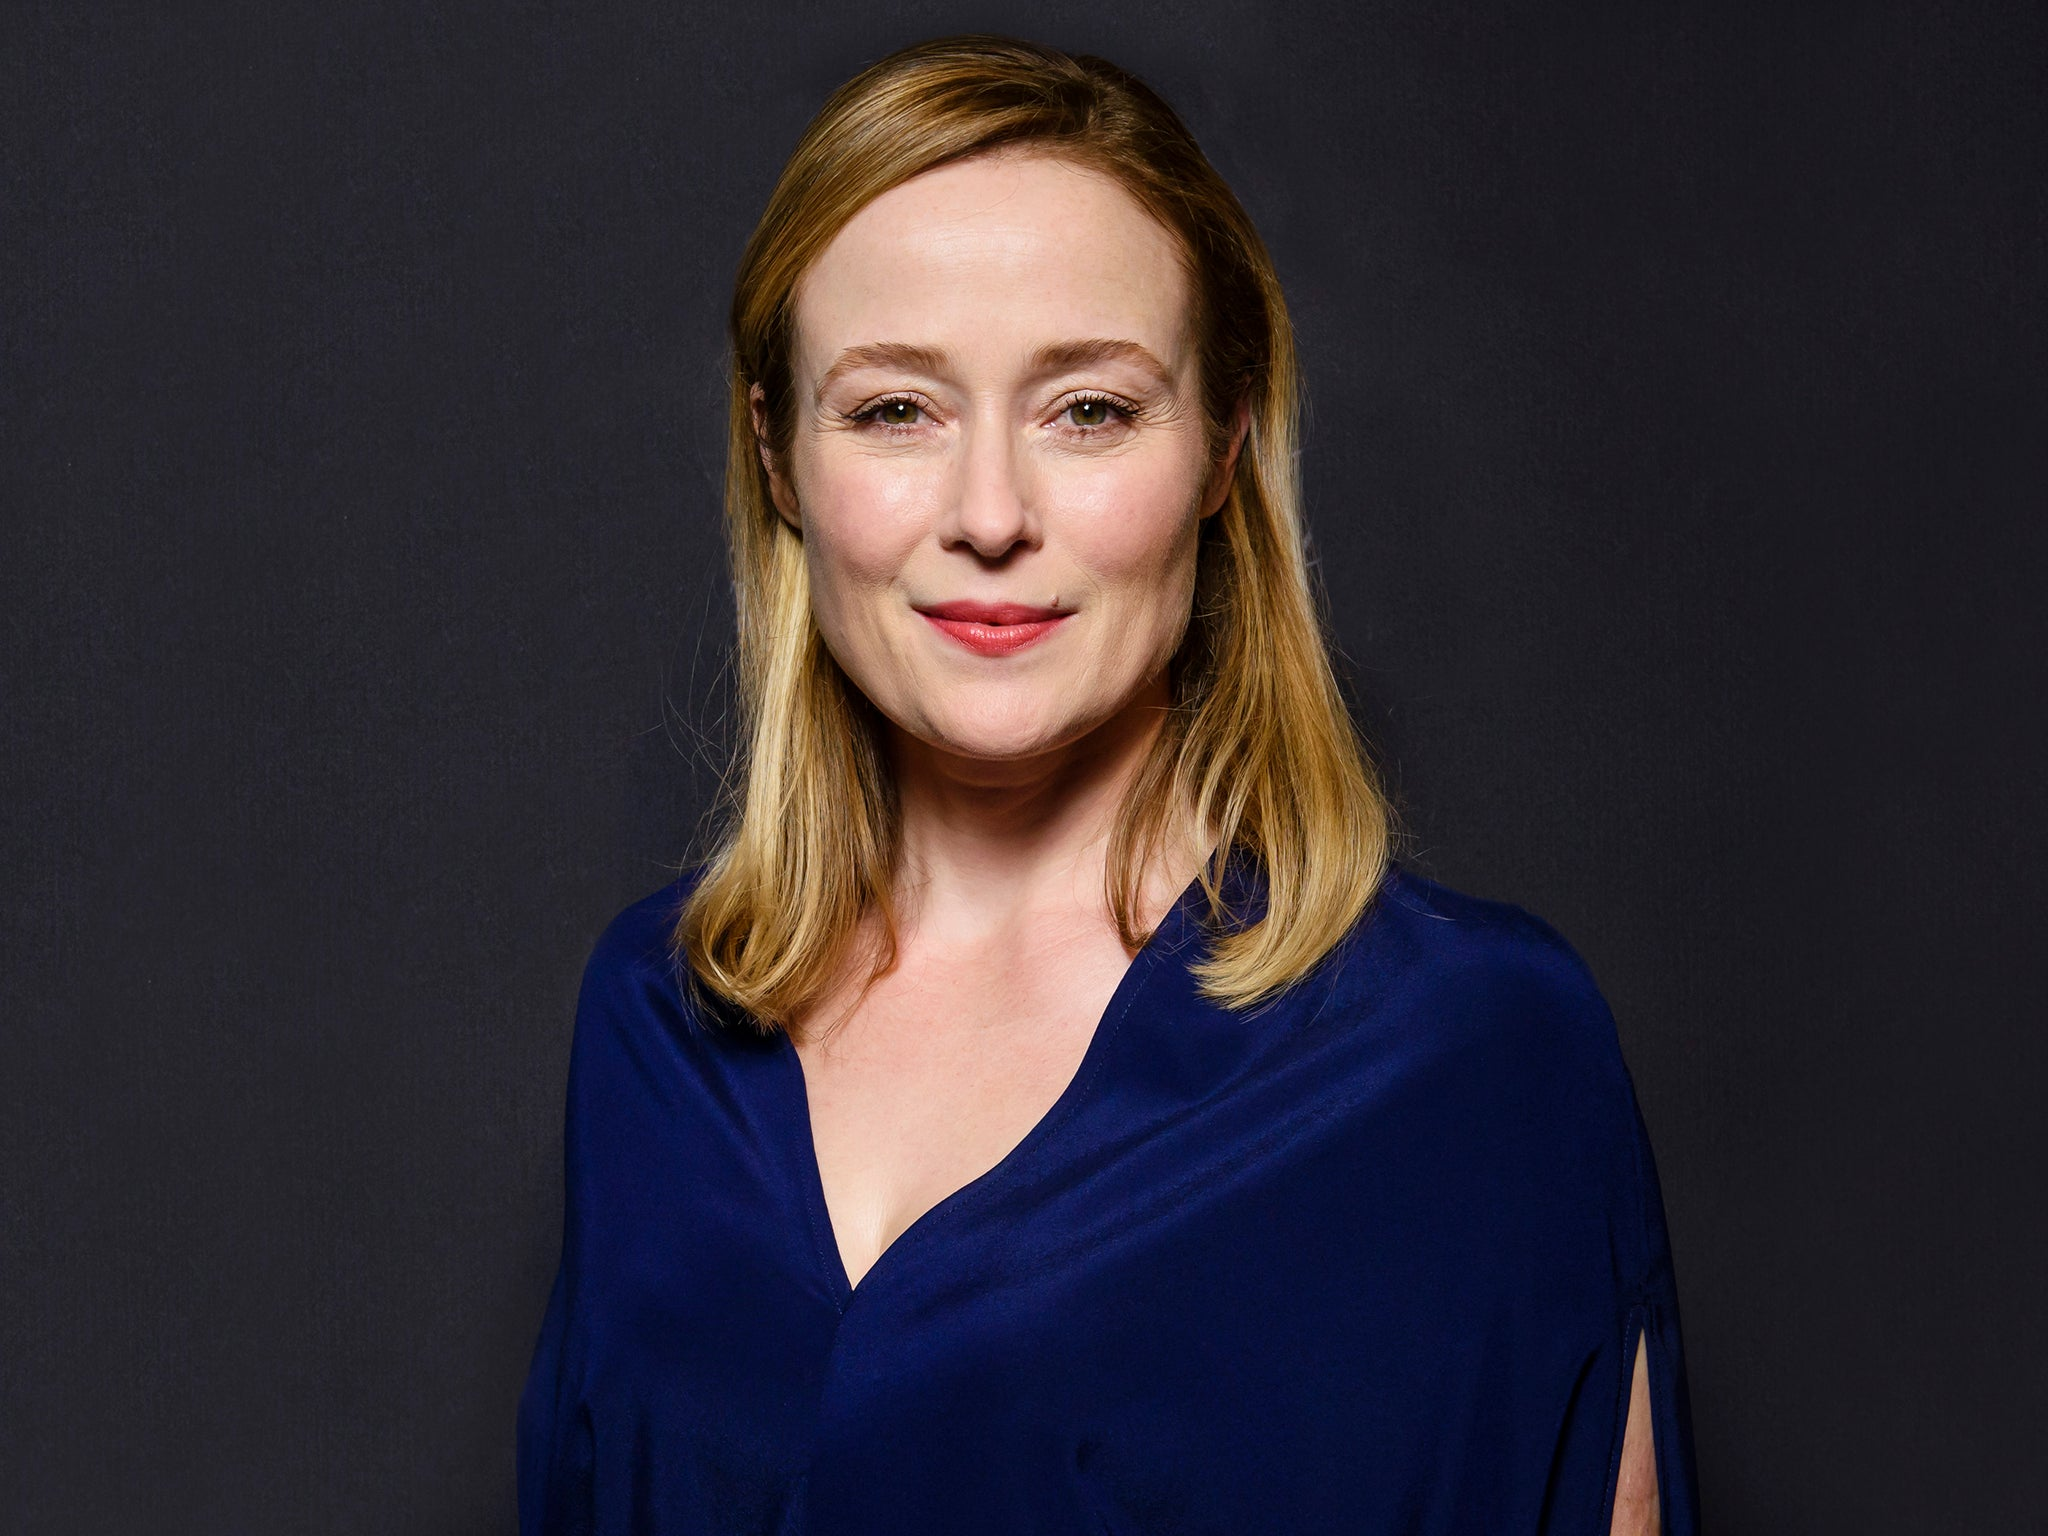 Jennifer Ehle: Working on Contagion, we all realised this